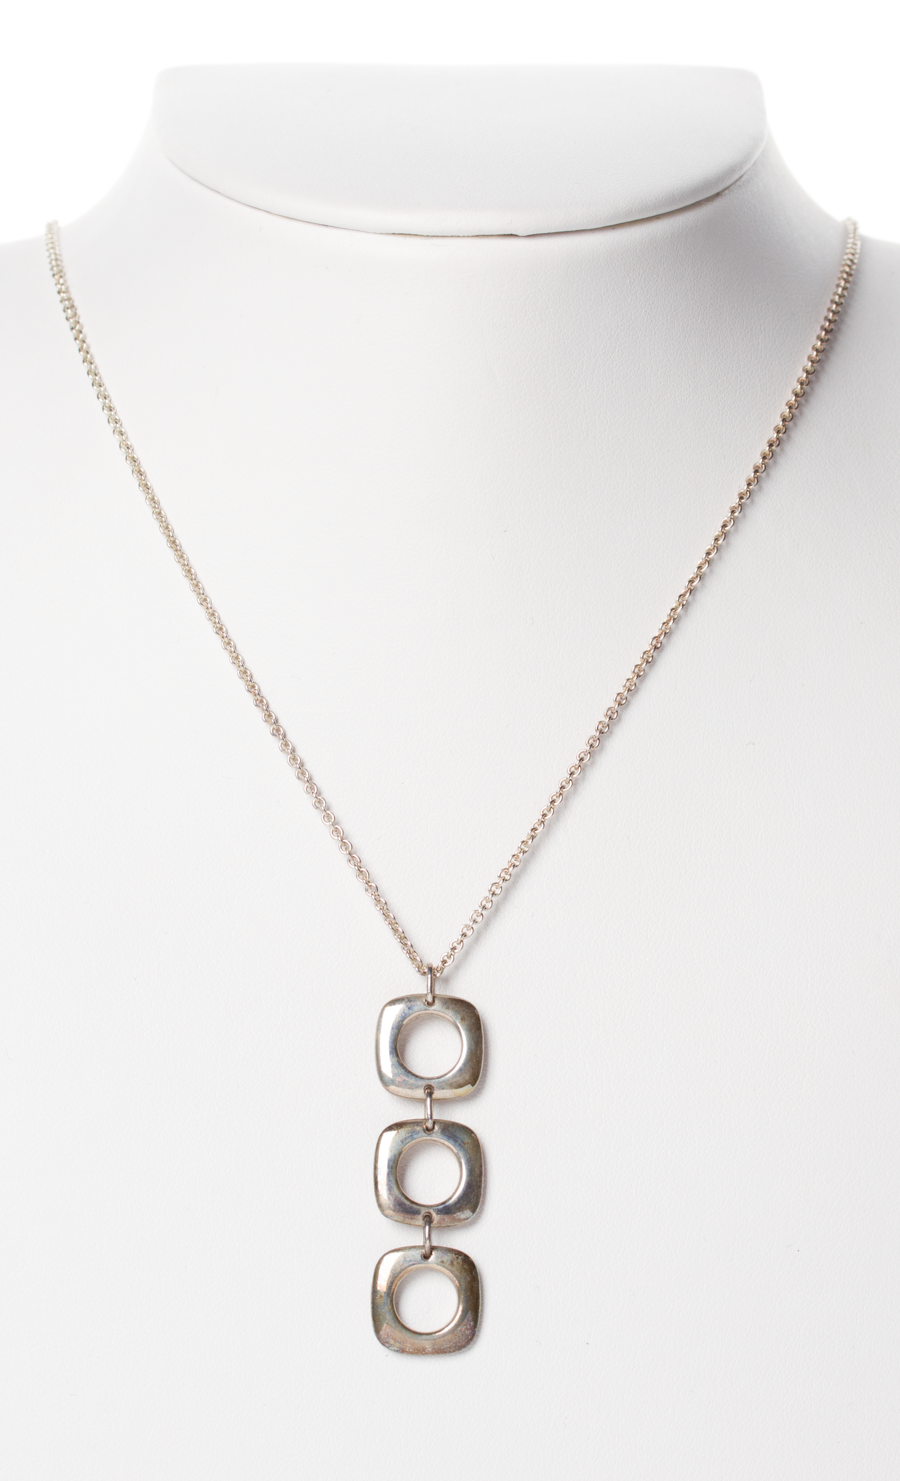 39d468d86574b TIFFANY & CO. NECKLACE @Michelle Coleman-HERS | Jewelry | Jewelry ...